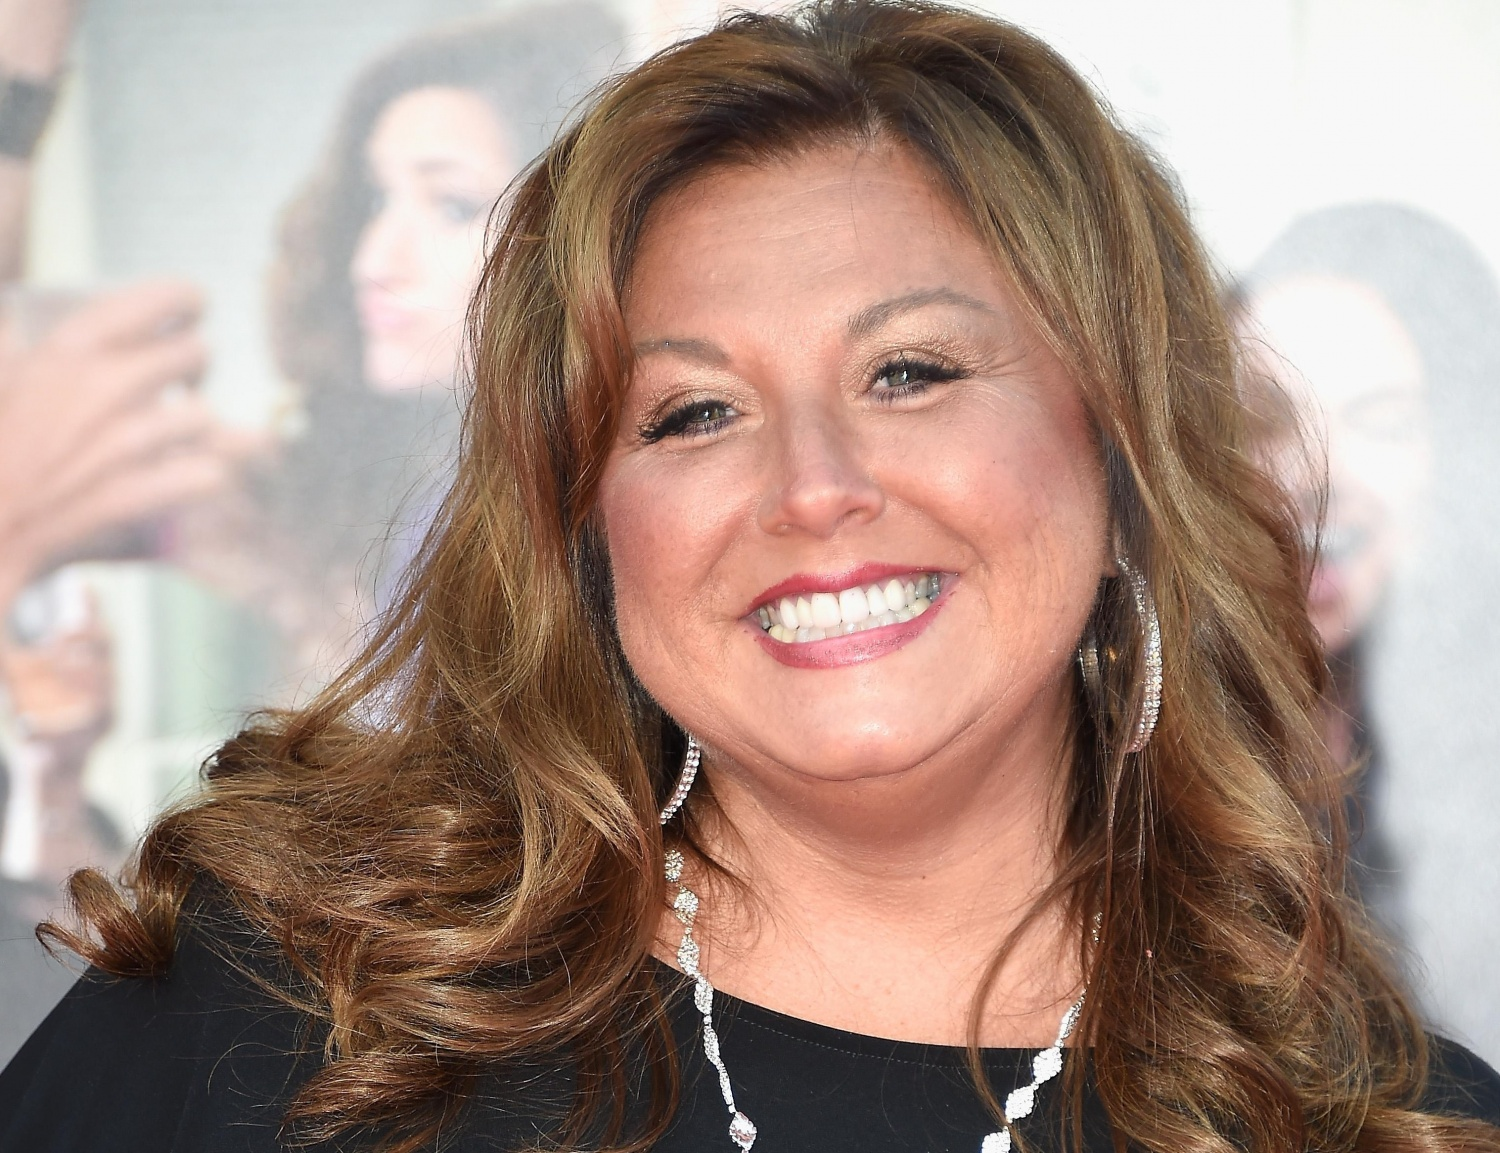 'Dance Moms' star Abby Lee Miller undergoes emergency surgery